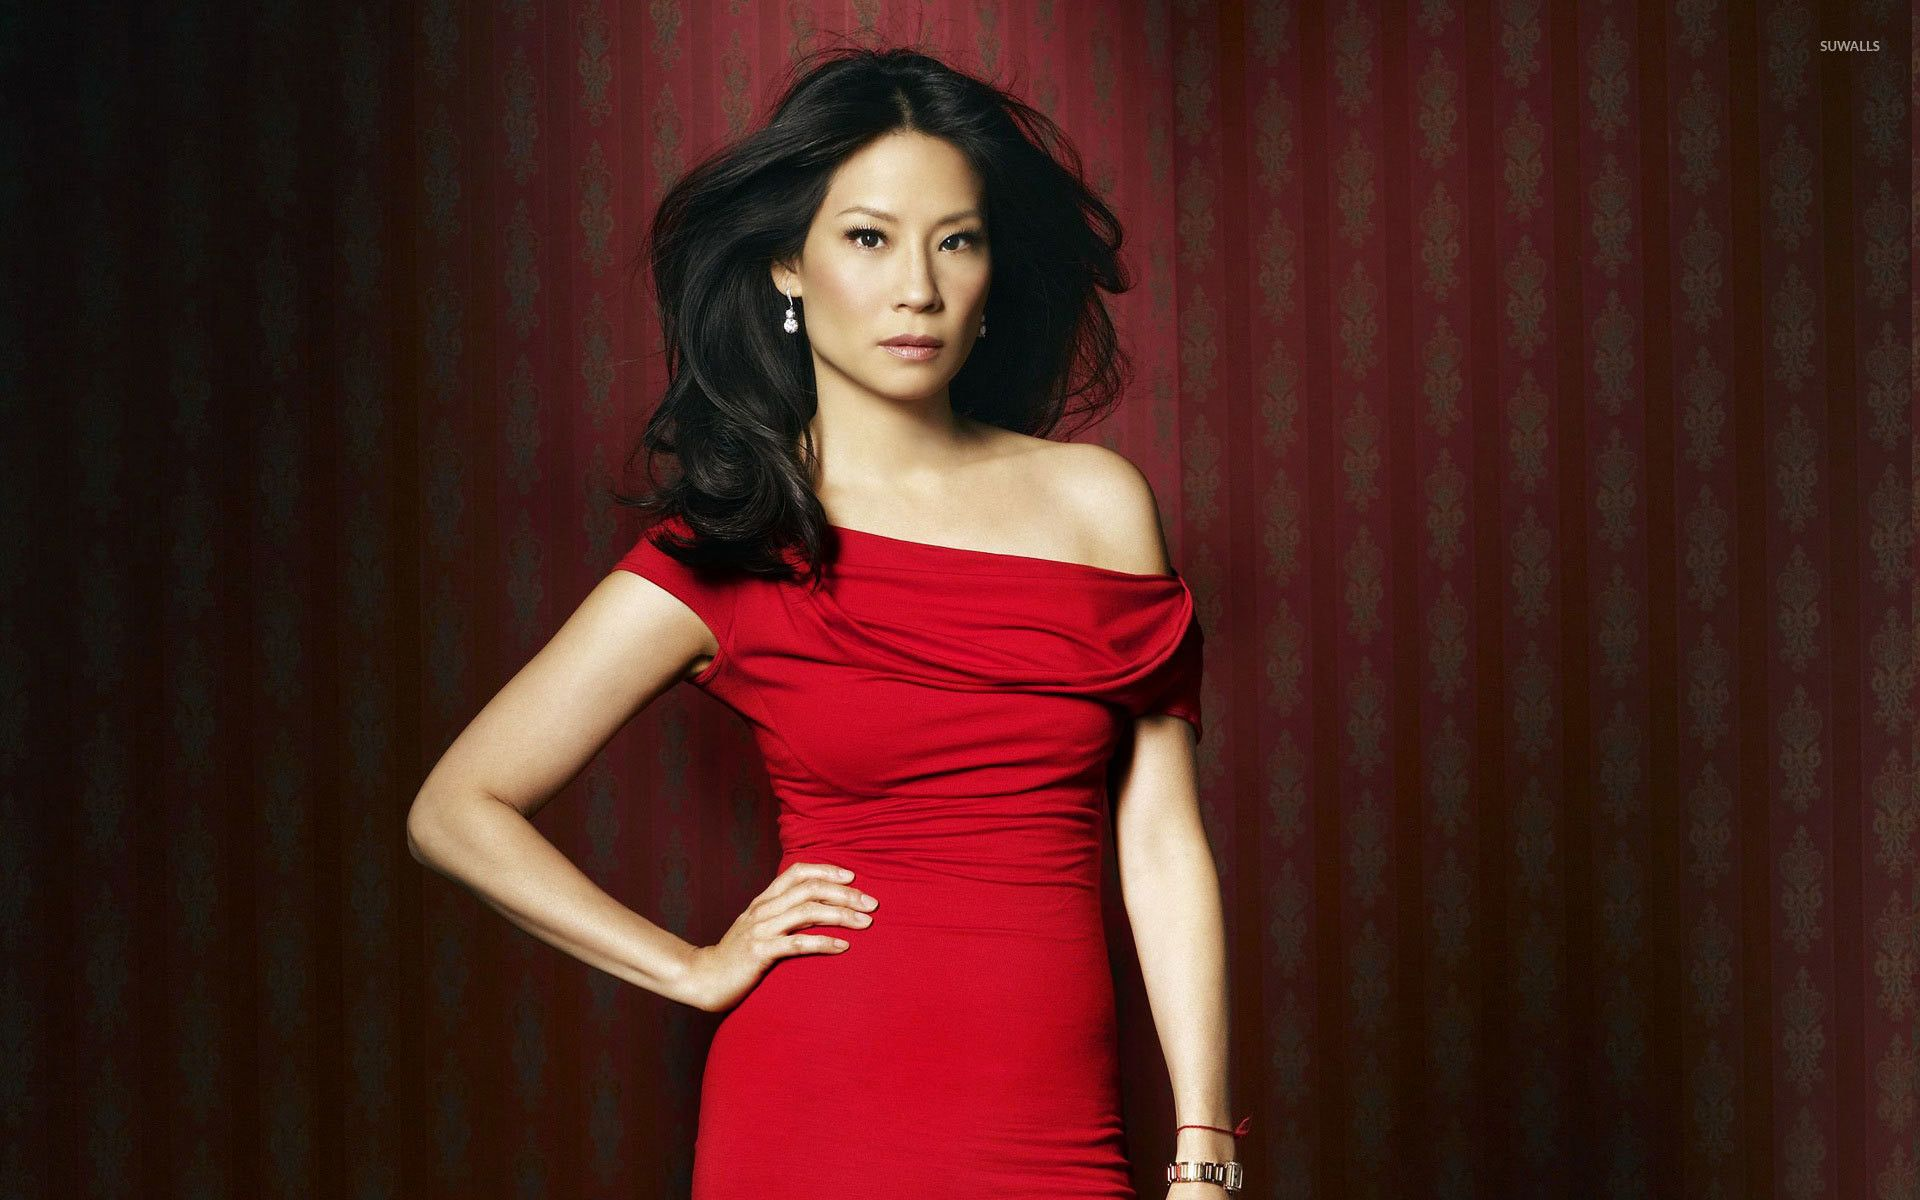 Lucy Liu Wallpapers - Top Free Lucy Liu Backgrounds - WallpaperAccess